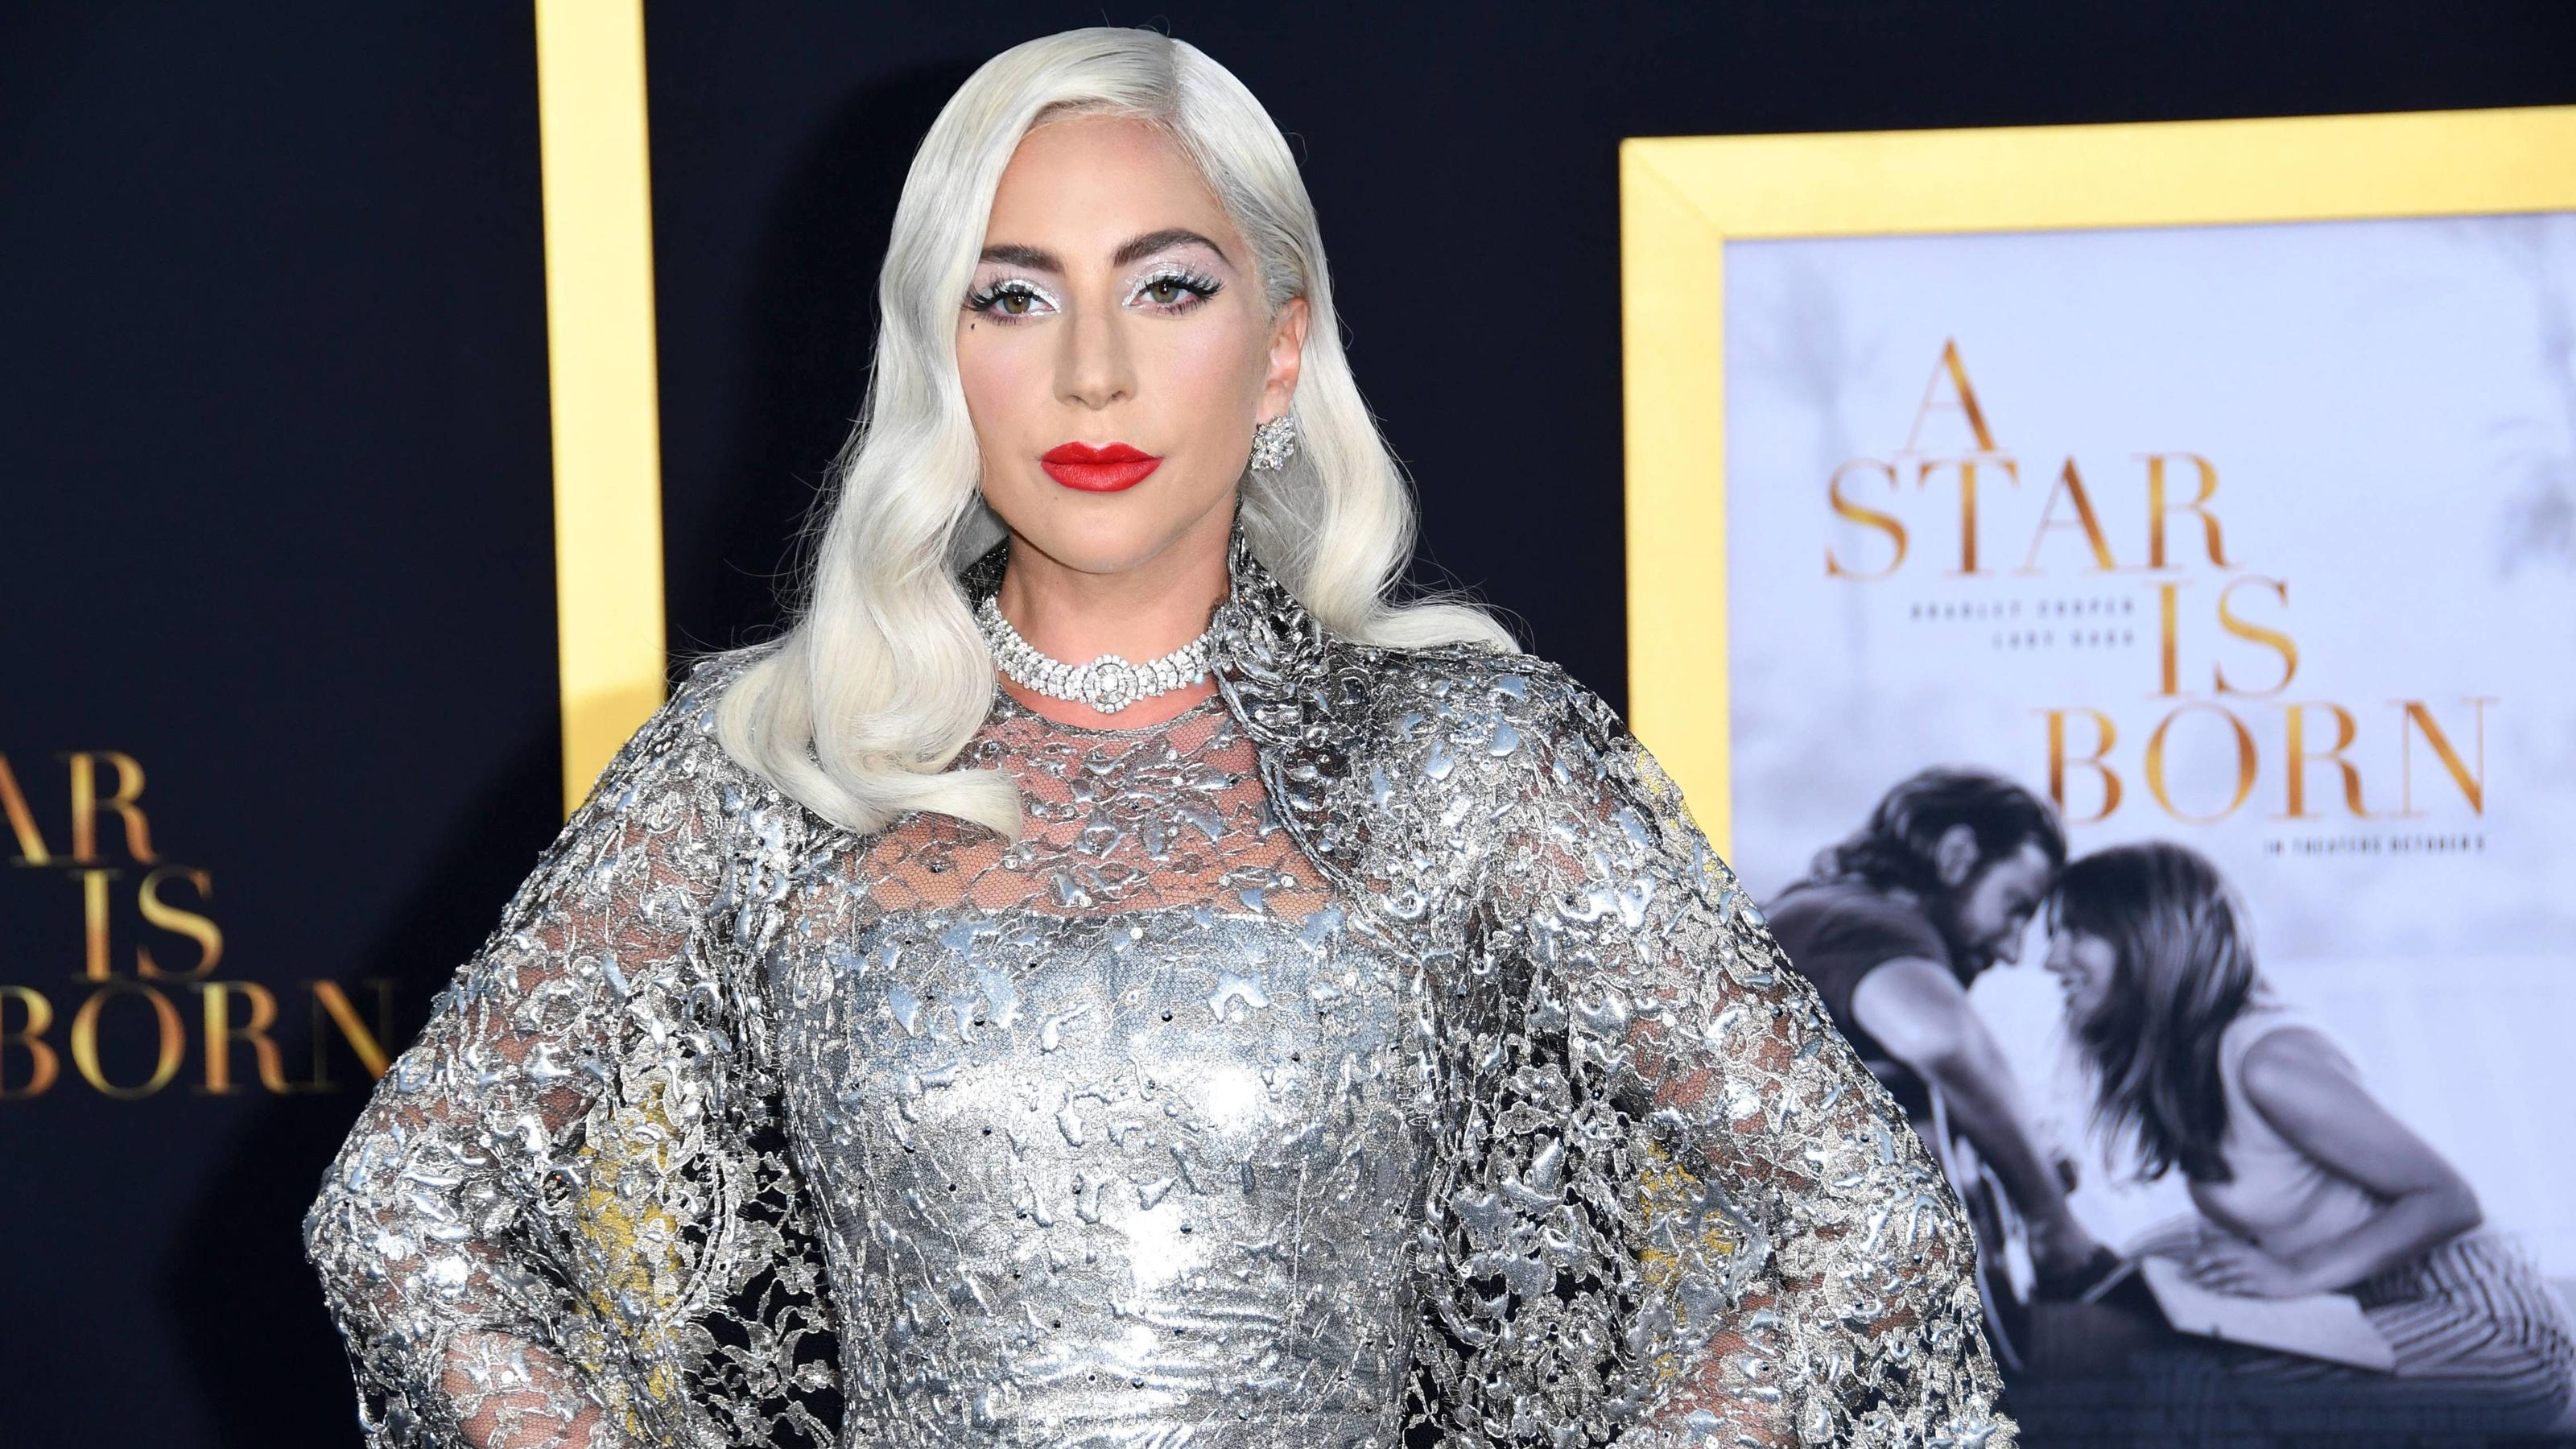 Entertainment Bilder des Tages 24 September 2018 - Los Angeles, California - Lady Gaga. A Star is Born Los Angeles Premiere held at The Shrine Auditorium. Photo Credit: Birdie Thompson/AdMedia 230484 2018-09-24 CA Los Angeles Etats-Unis PUBLICATIONx